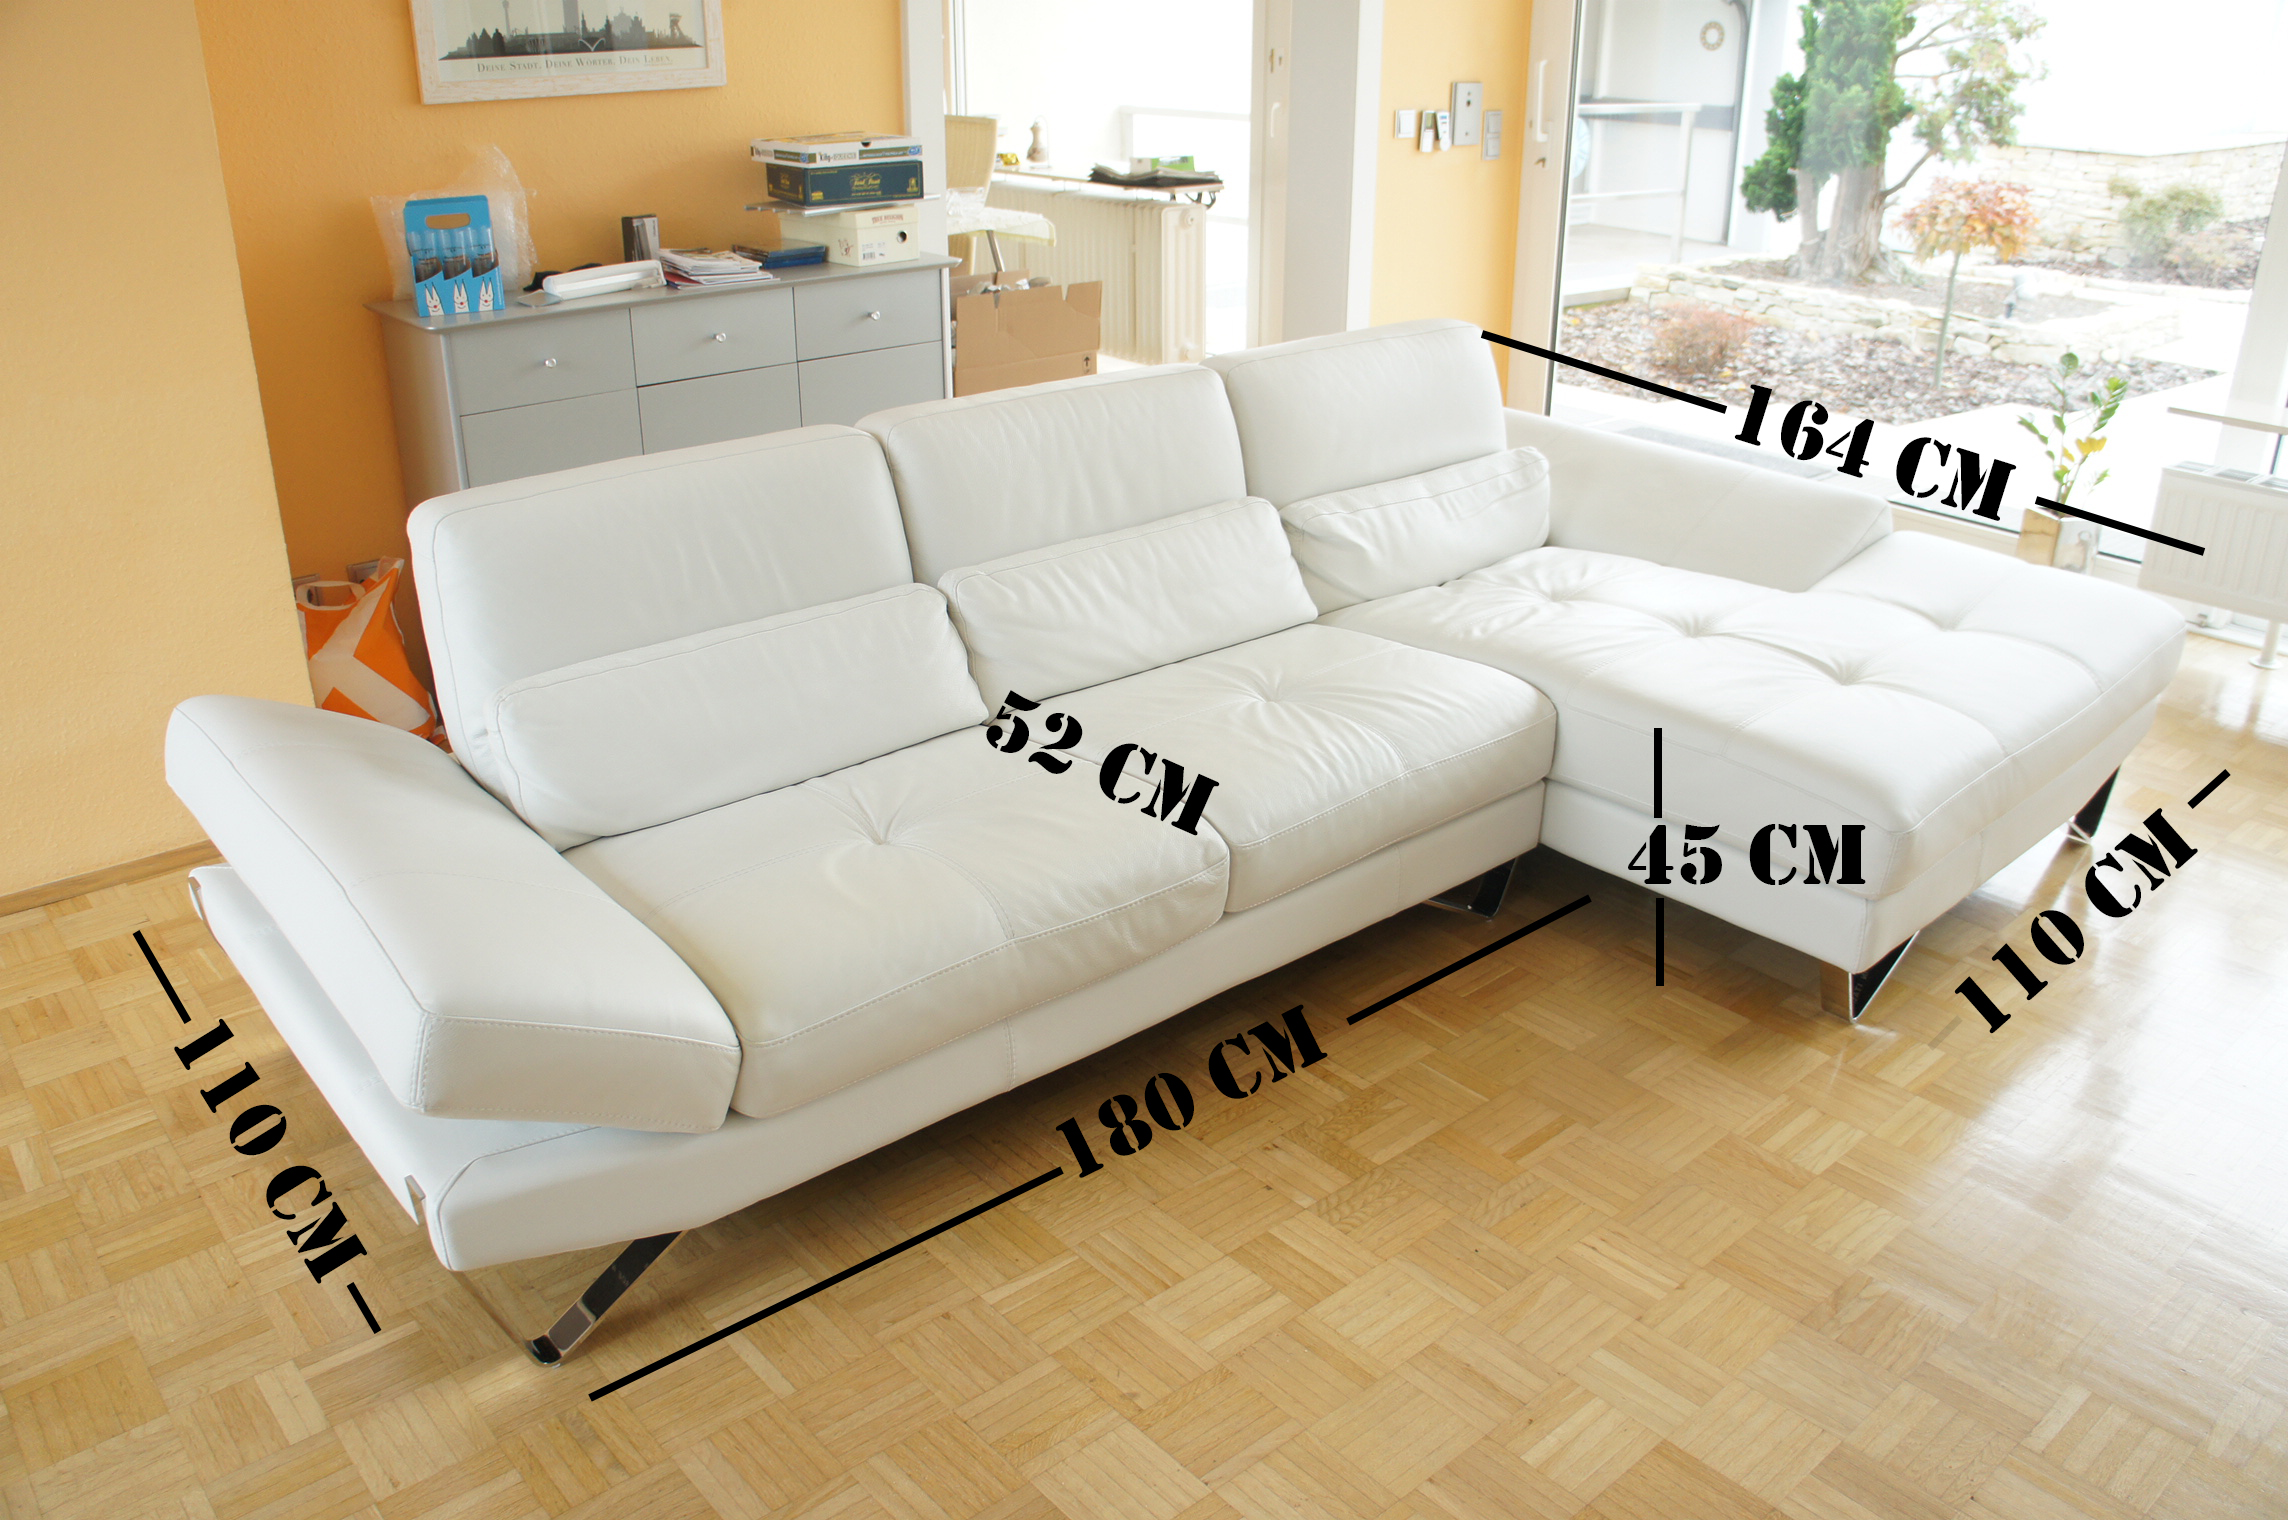 leder couch couchgarnitur sofa evan wei verstellbar 1 jahr alt np 4250 euro ebay. Black Bedroom Furniture Sets. Home Design Ideas